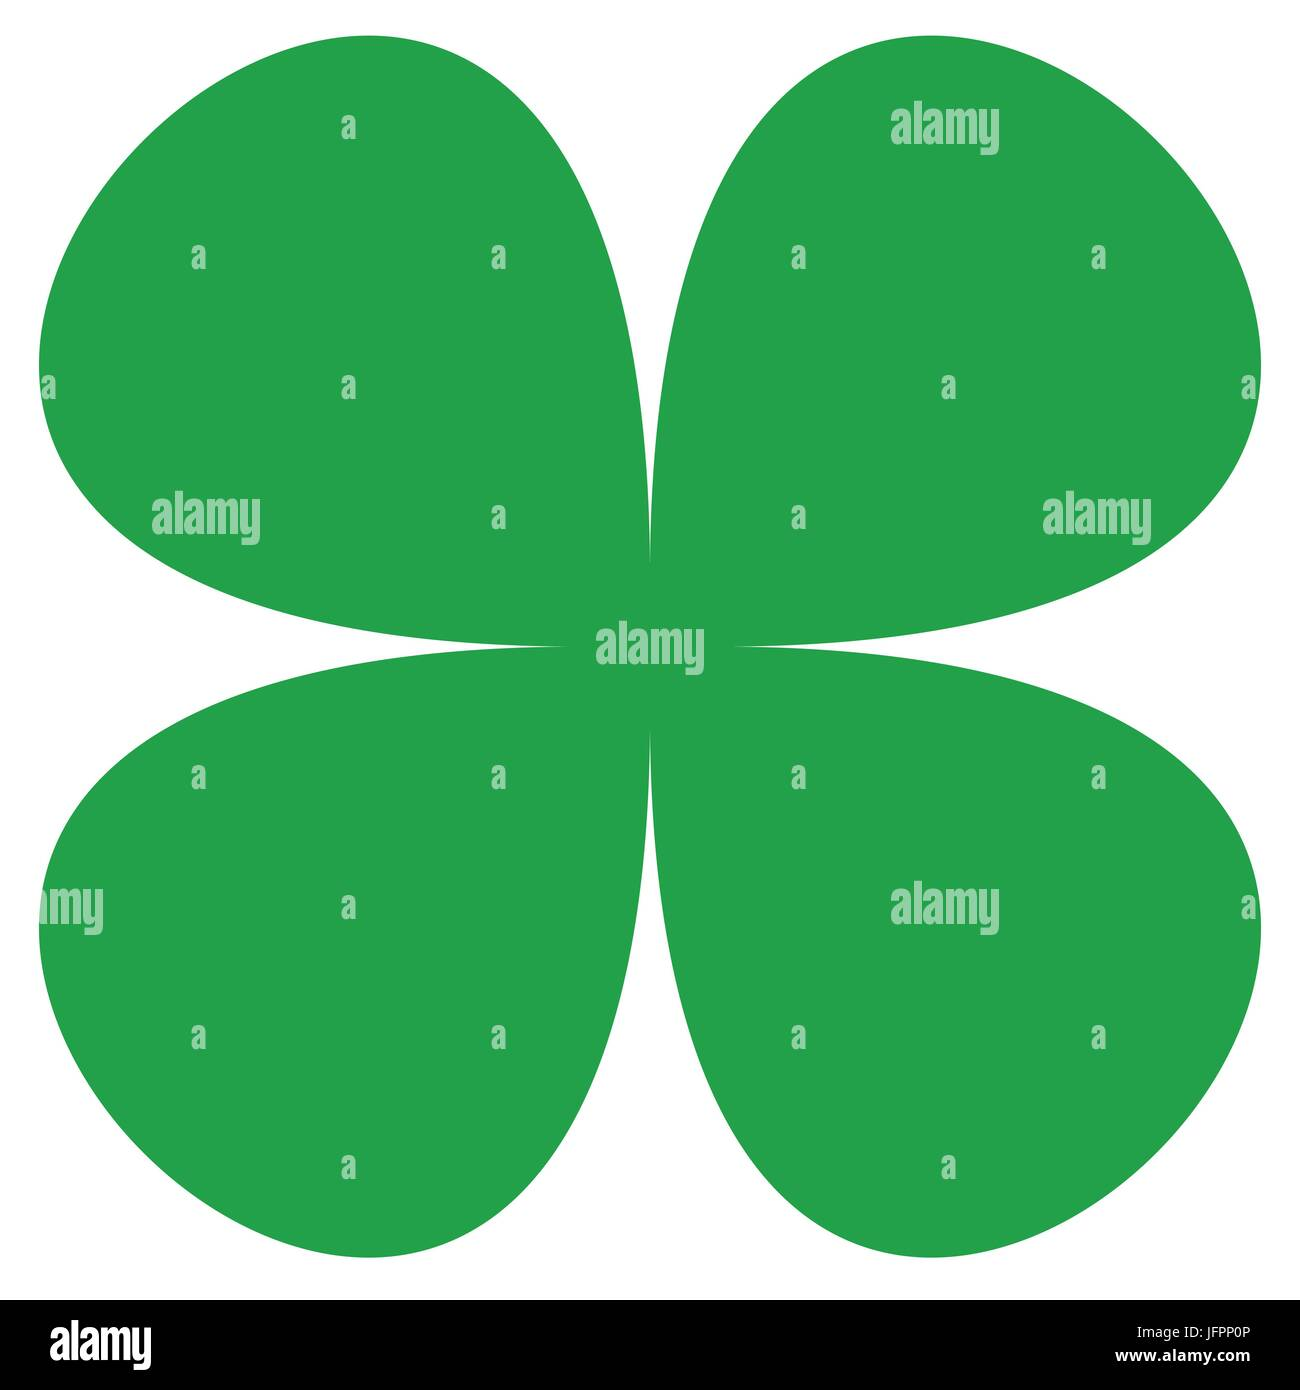 Uncategorized Lucky Symbol four leaf clover symbol simple flat icon for luck lucky concepts concepts